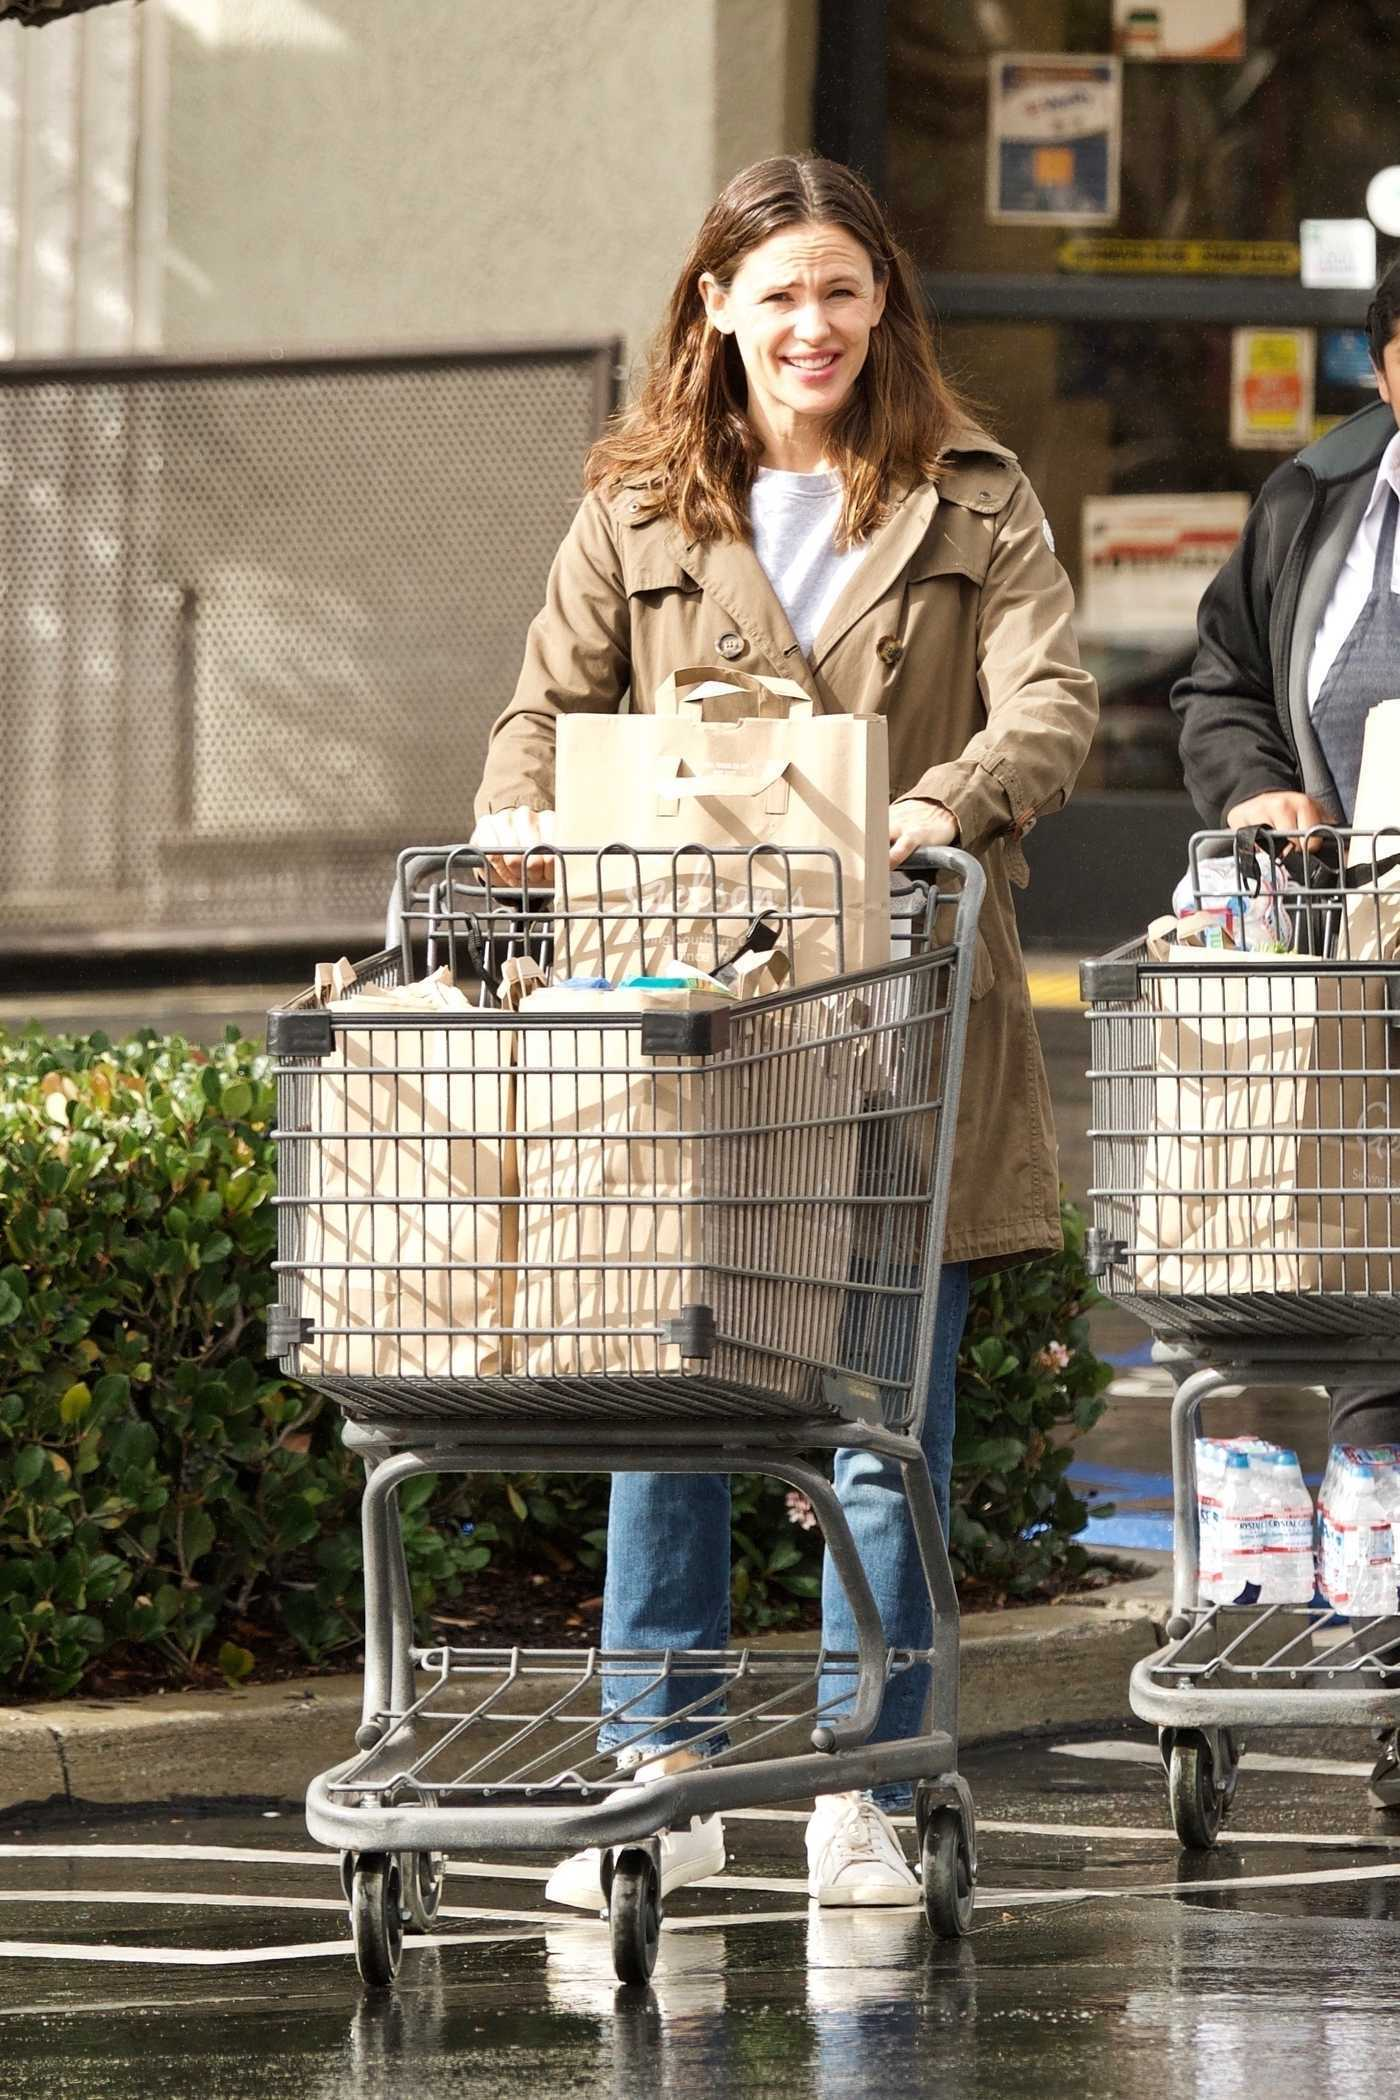 Jennifer Garner in a Beige Trench Coat Goes Grocery Shopping in Brentwood 01/12/2019